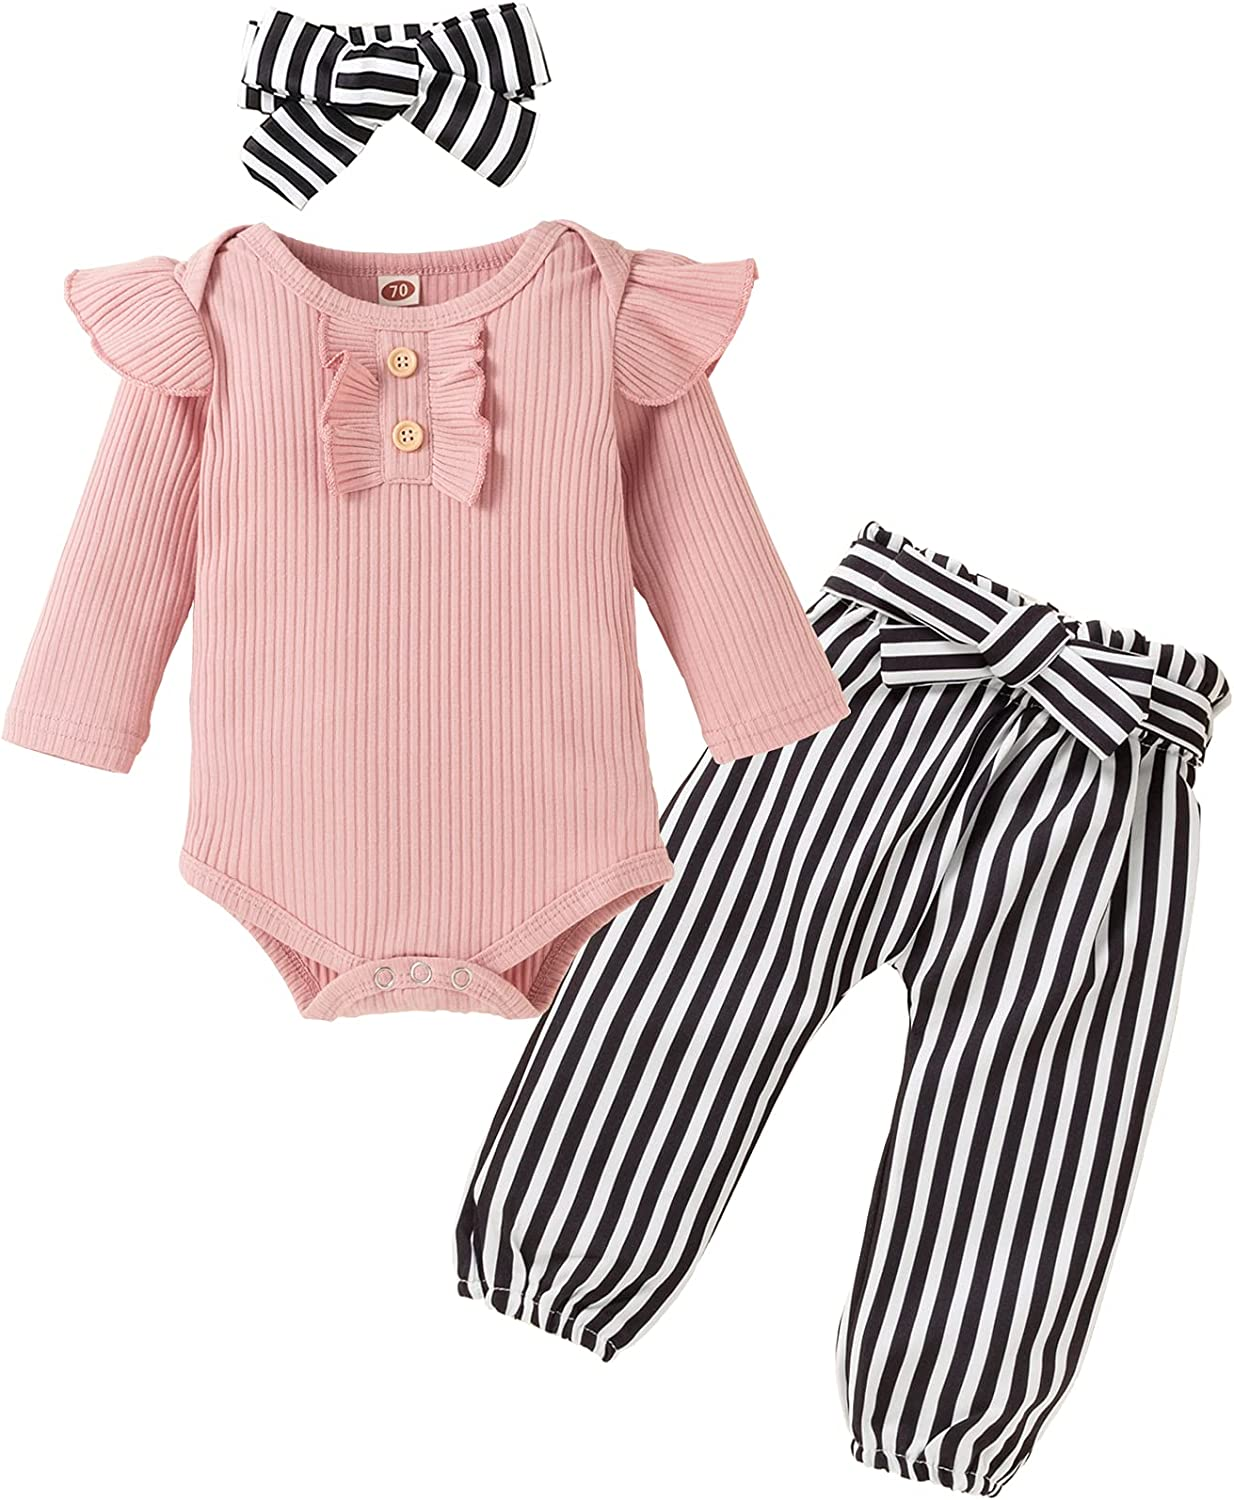 Newborn Baby Girls Outfits Flying Sleeve Romper+Cute Pants+Headband 3PC Infant Girl Clothes Set